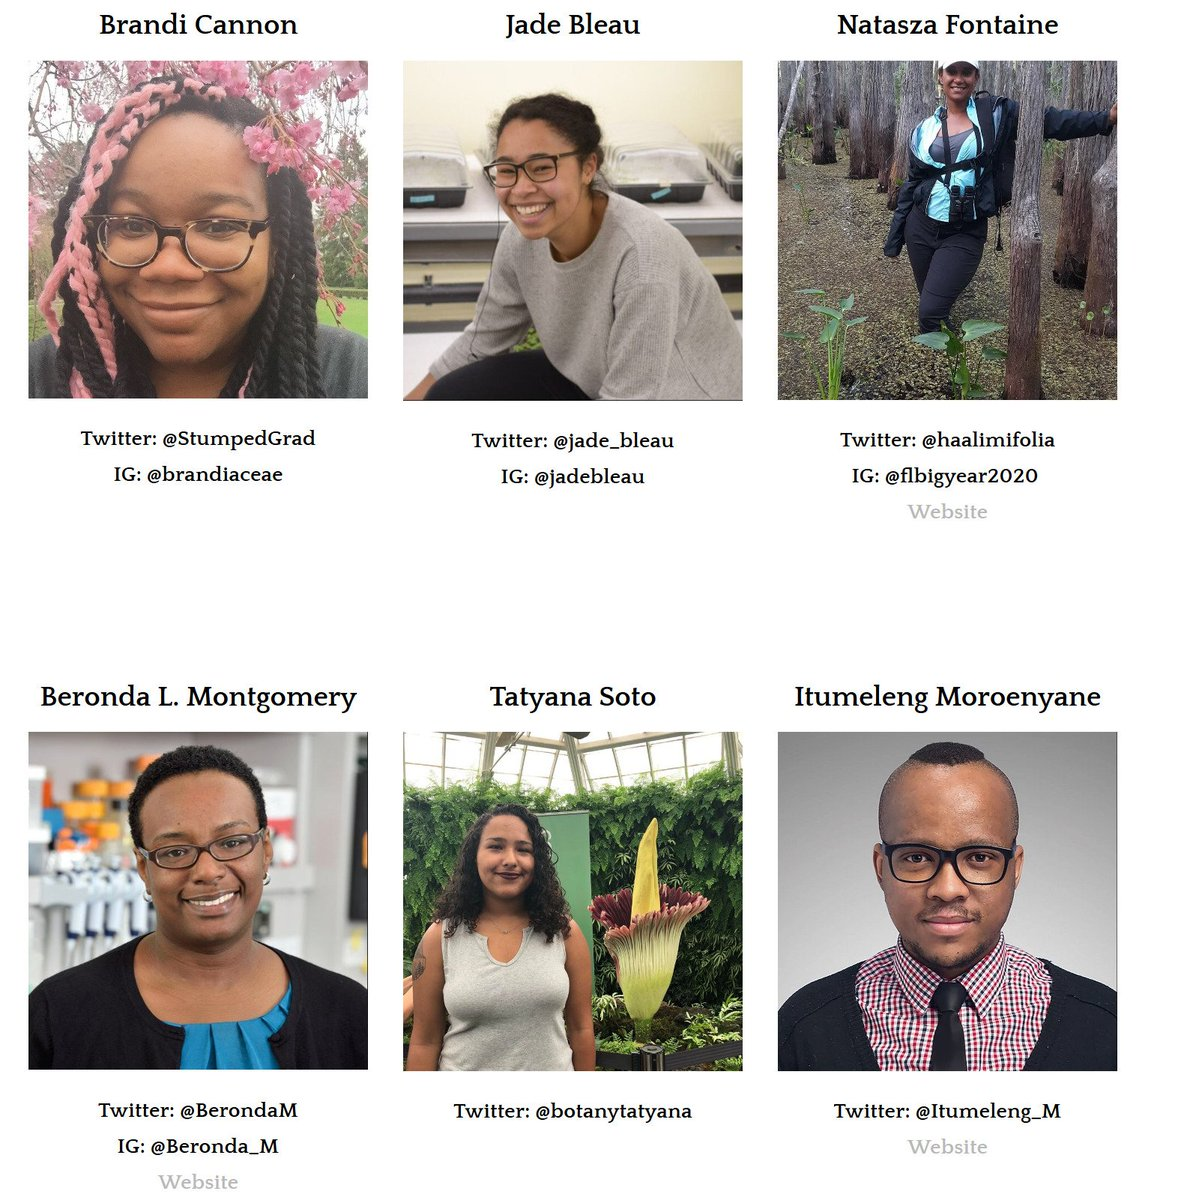 Let's get to know the amazing people behind #BlackBotanistsWeek! Thank you all for your science, leadership, energy, & so much more! In the coming days, we'll highlight each member of the organizing team - a small thanks for your big efforts! #BlackInSTEM #BlackAFinSTEM https://t.co/Cxw1KWcgpd